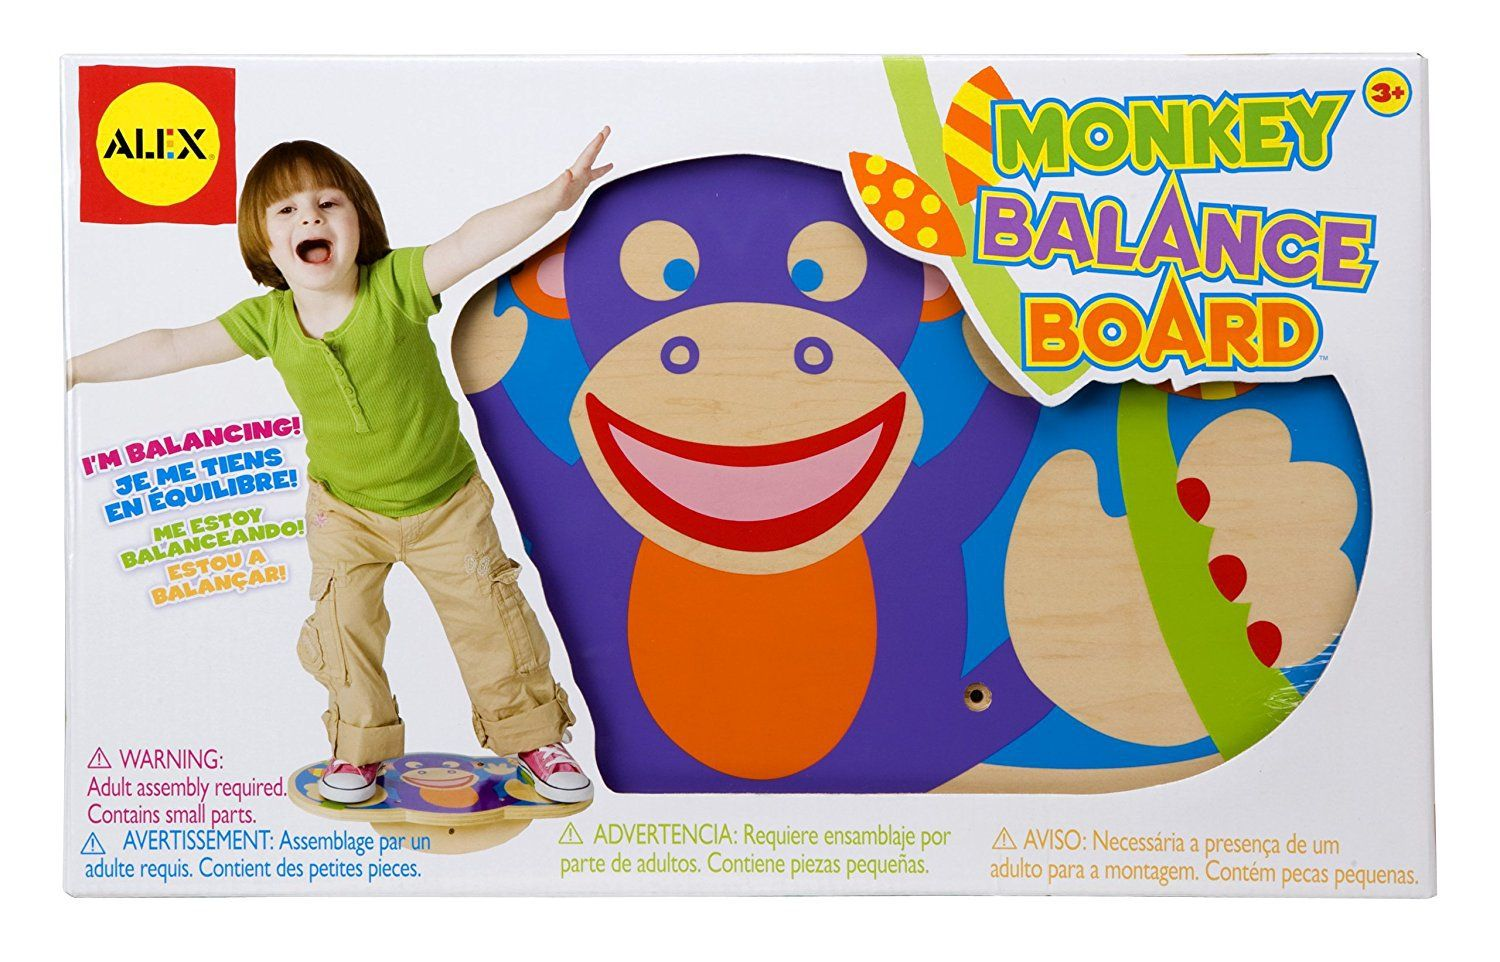 Cool Toys for 3 Year Old Boys 2019 Alex toys, Balance